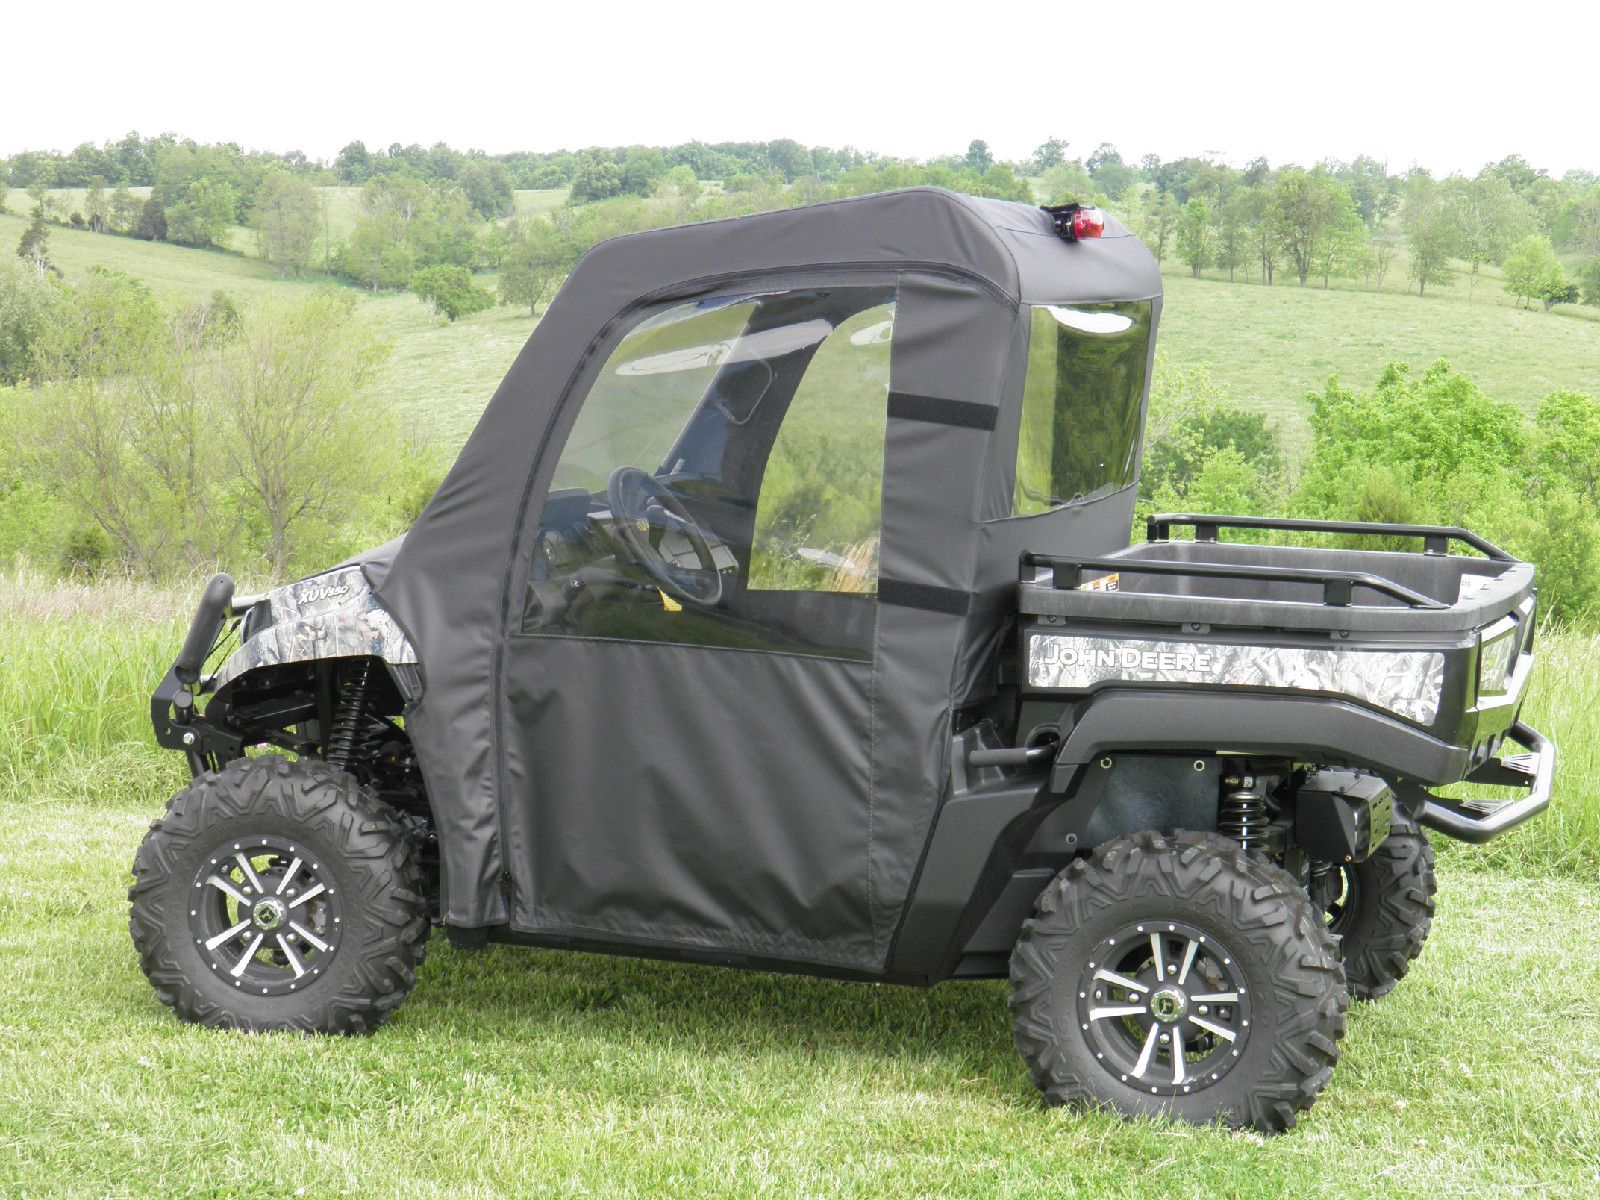 john deere gator hpx xuv soft full door kit ebay. Black Bedroom Furniture Sets. Home Design Ideas